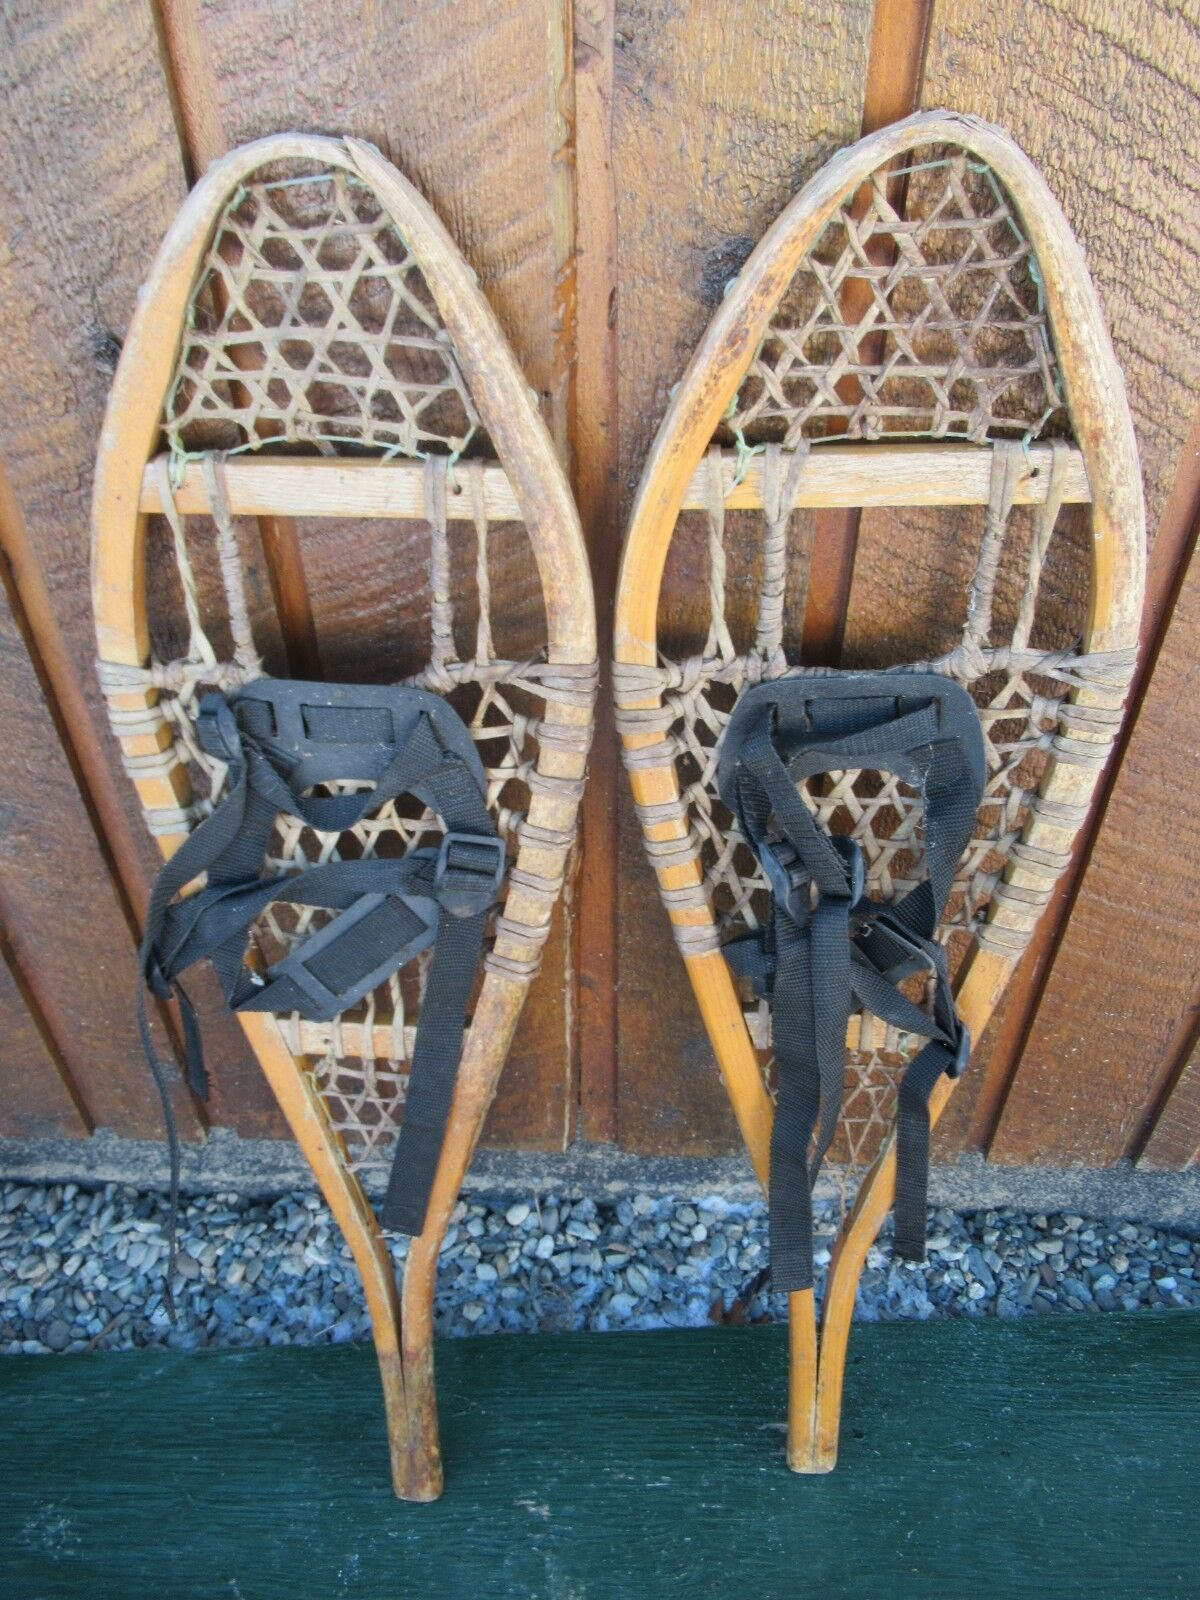 Snowshoes 33  Long 10  Wide  with Bindings  Ready To Hang for Decoration  fashion brands